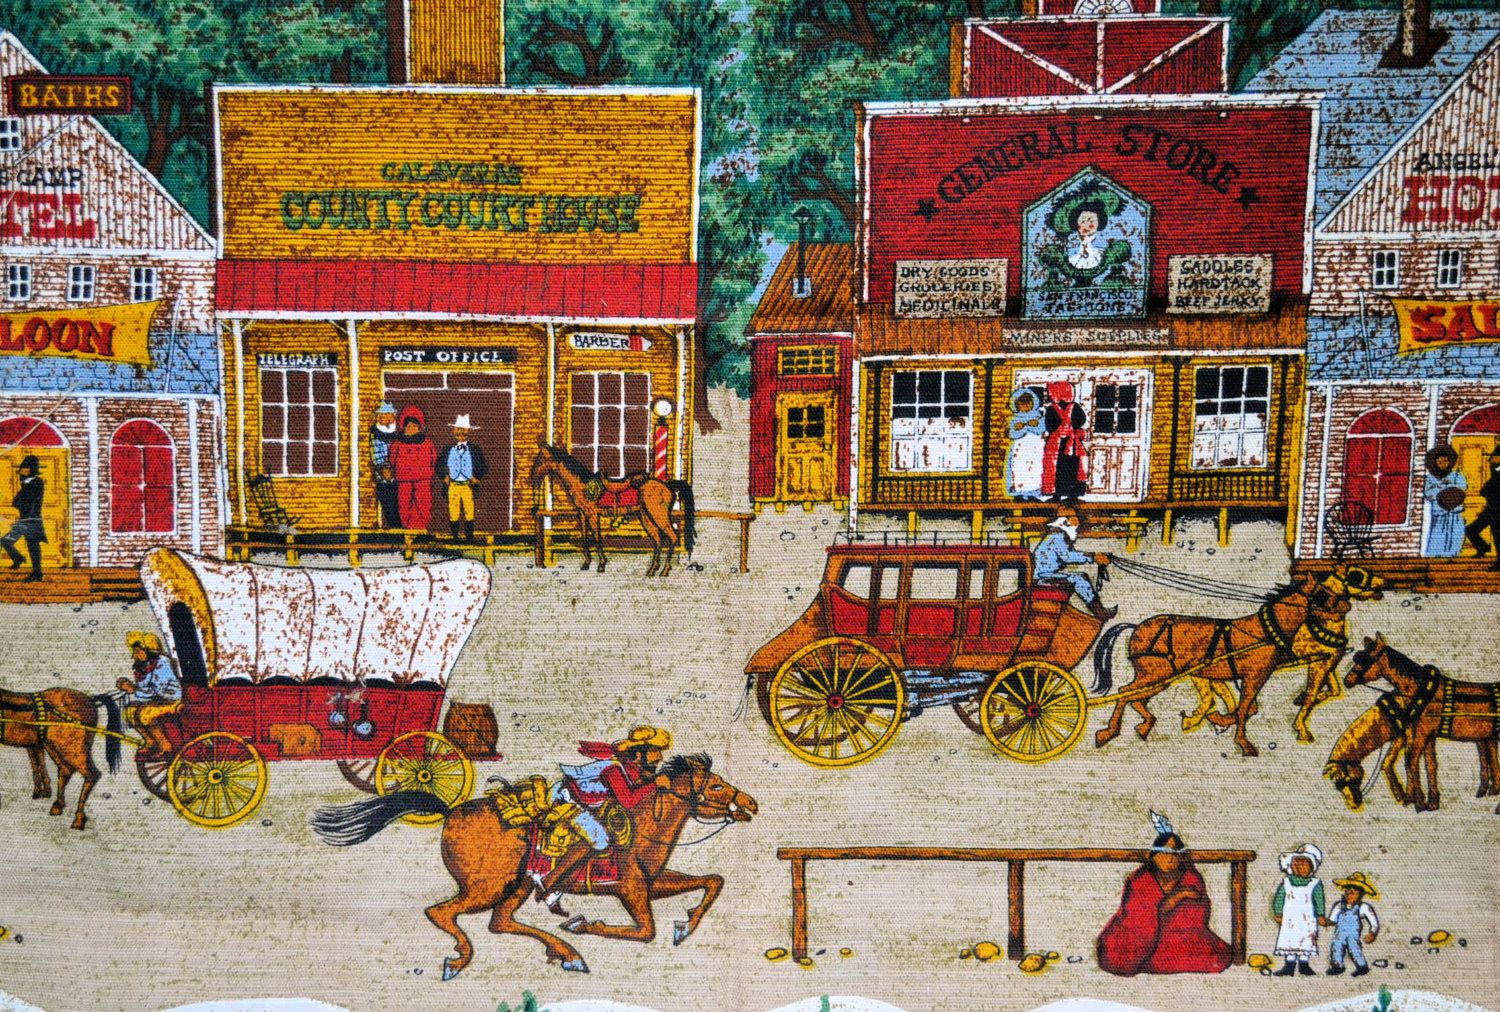 old west fabric town scene fabric calaveras county covered wagon